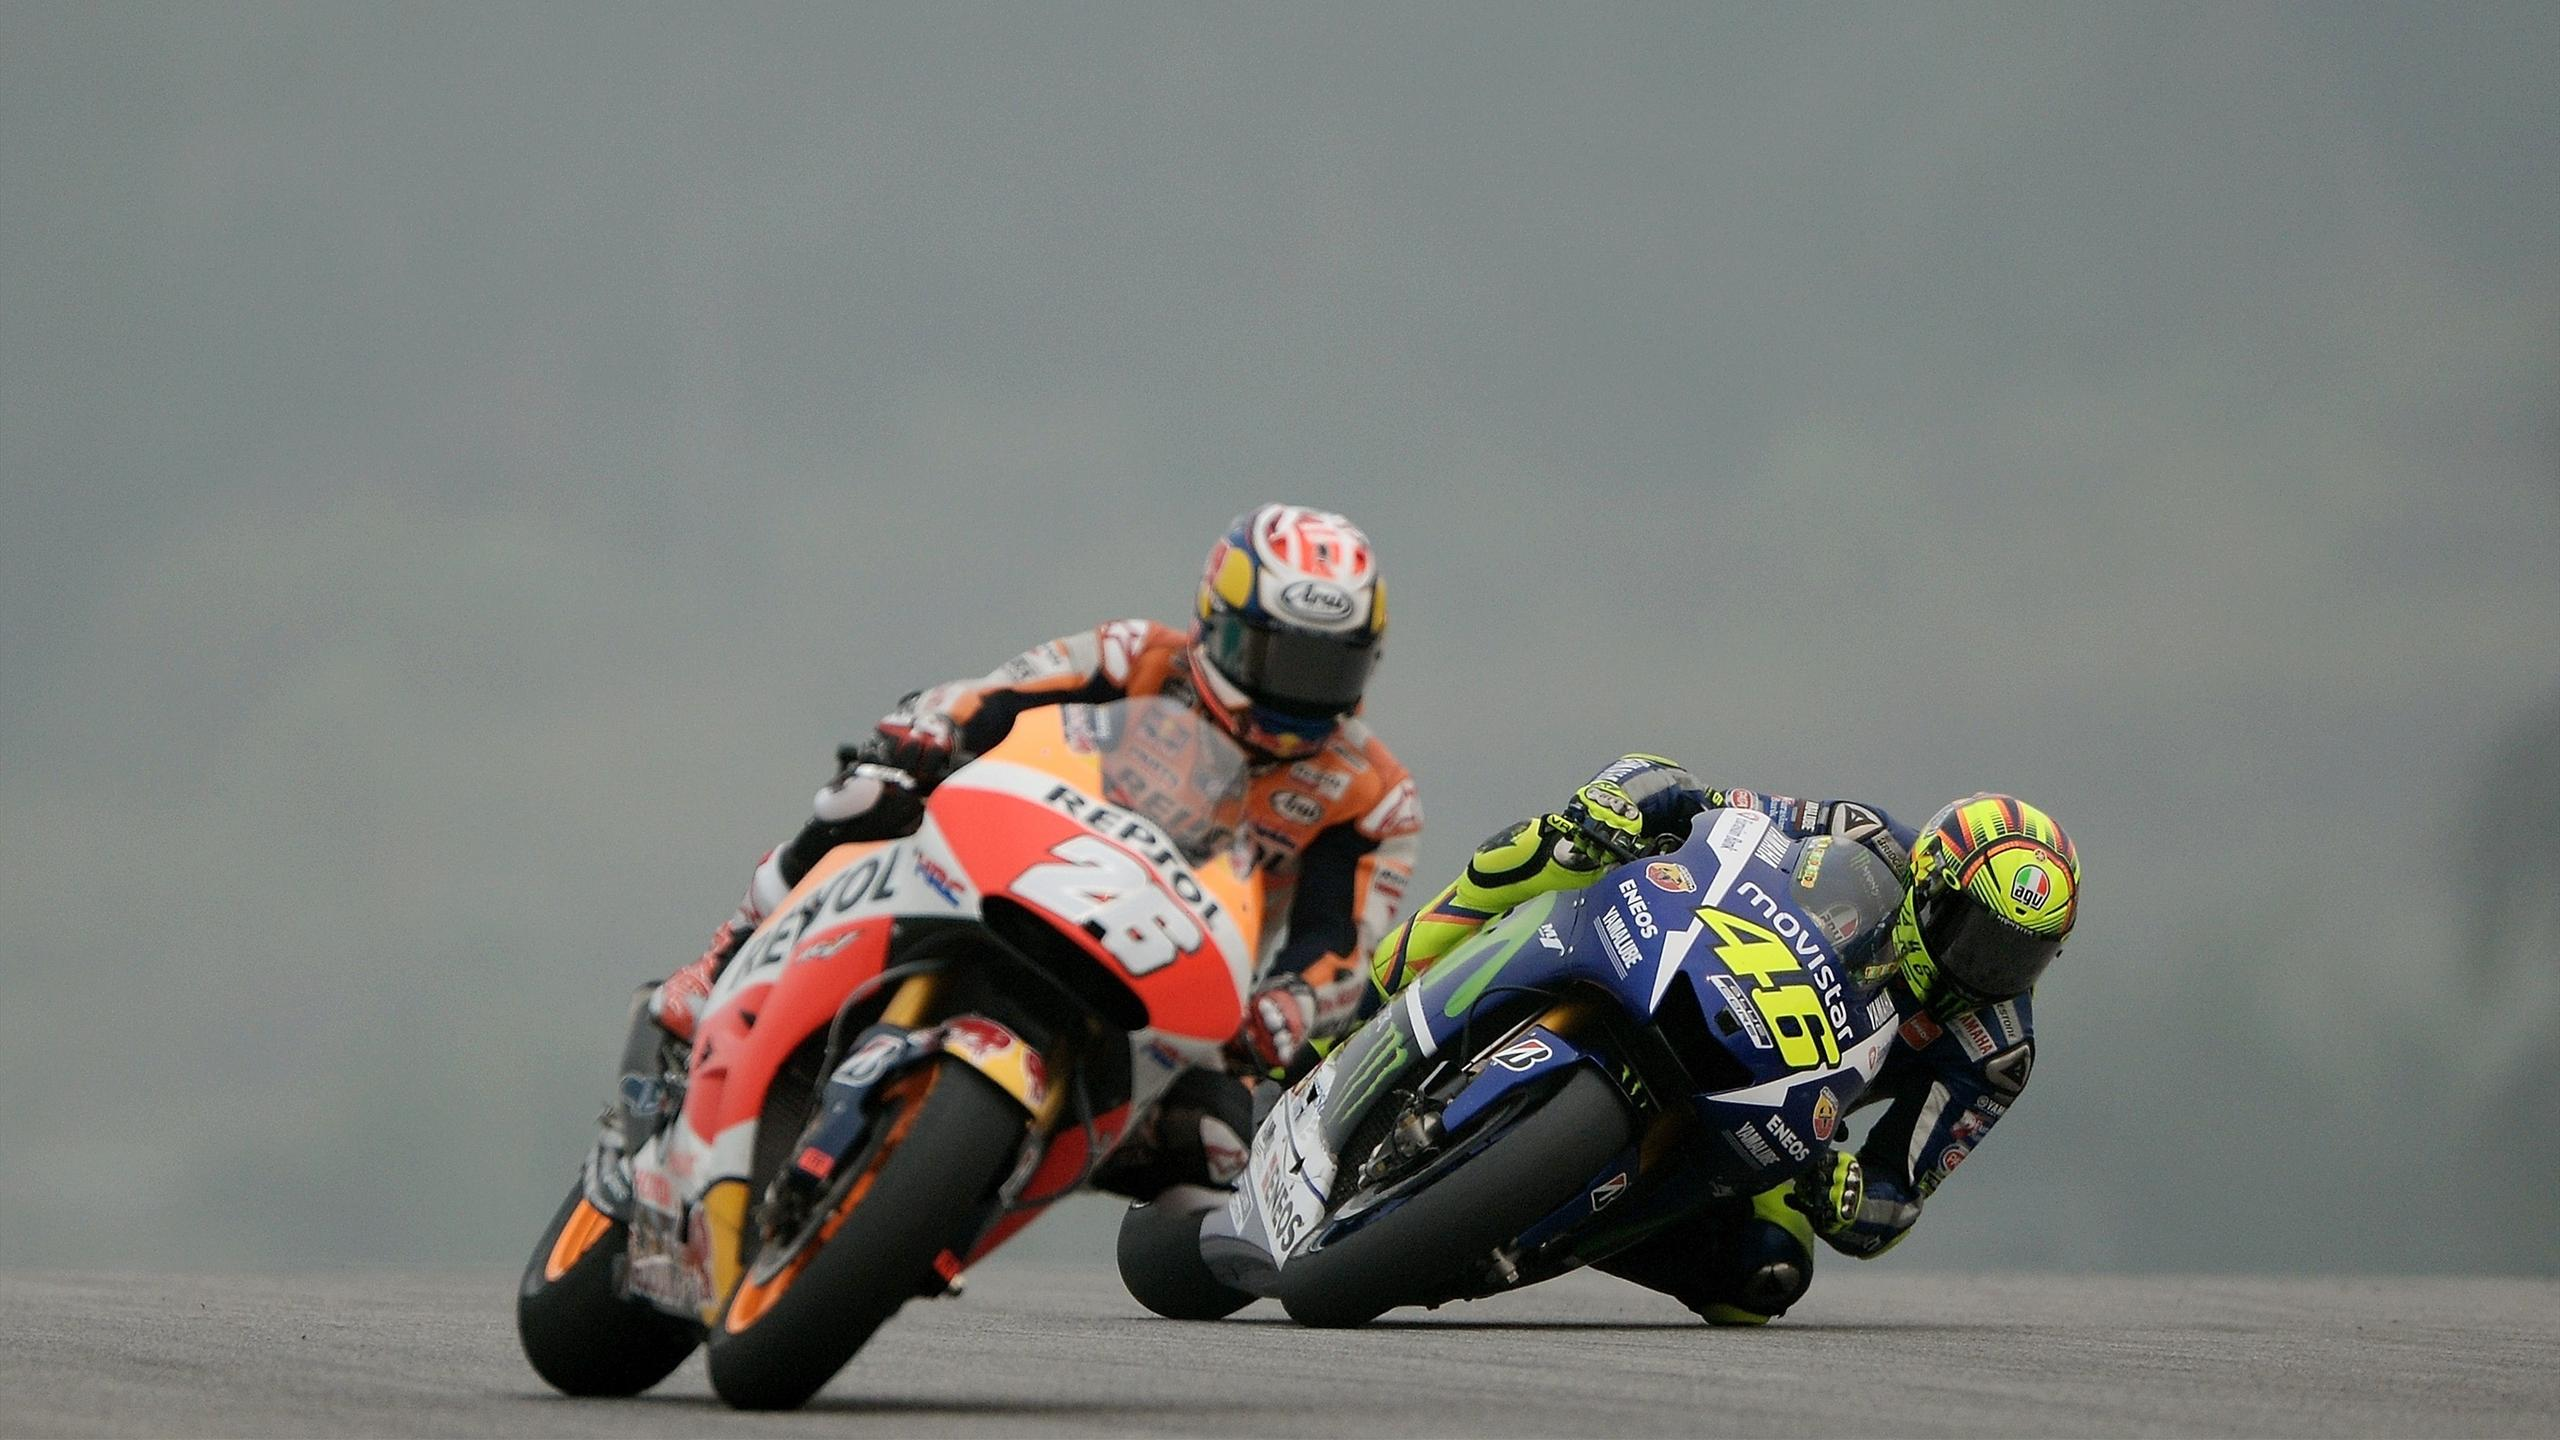 Movistar Yamaha MotoGP's Italian rider Valentino Rossi (R) and Repsol Honda Team's Spanish rider Dani Pedrosa (L) power their bikes during the third practice session of the MotoGP Malaysian Grand Prix at Sepang International Circuit on October 24, 2015